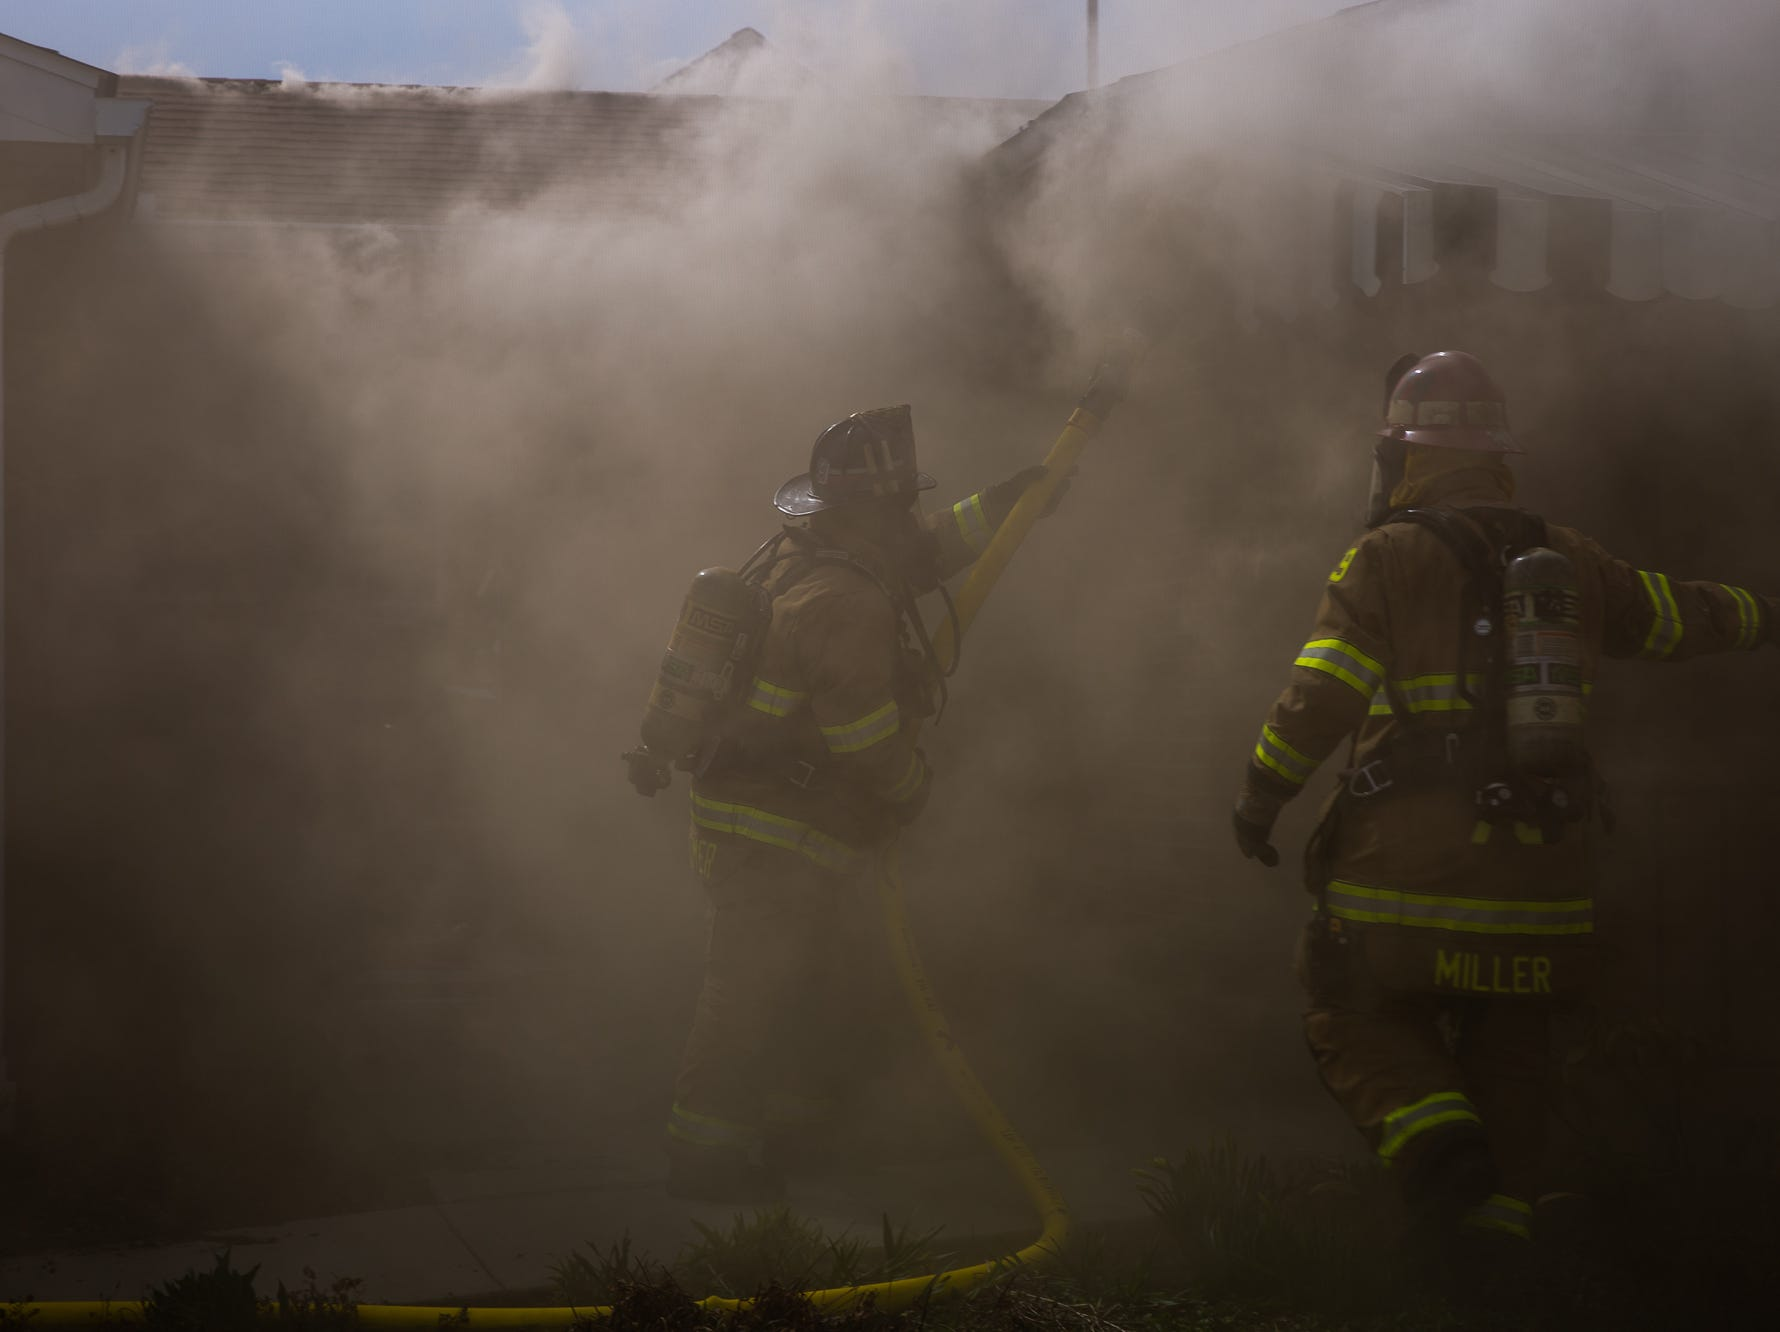 Volunteer firefighter Brady Cromer and Captain Geoff Miller gear up to begin the initial interior attack at the scene of a house fire on the 100 block of Mumma Ave., Saturday, March 30, 2019, in Penn Township. No one was injured in the fire, which appears to have been an accidental fire in the kitchen, said Hanover Area Fire & Rescue Chief Tony Clousher.